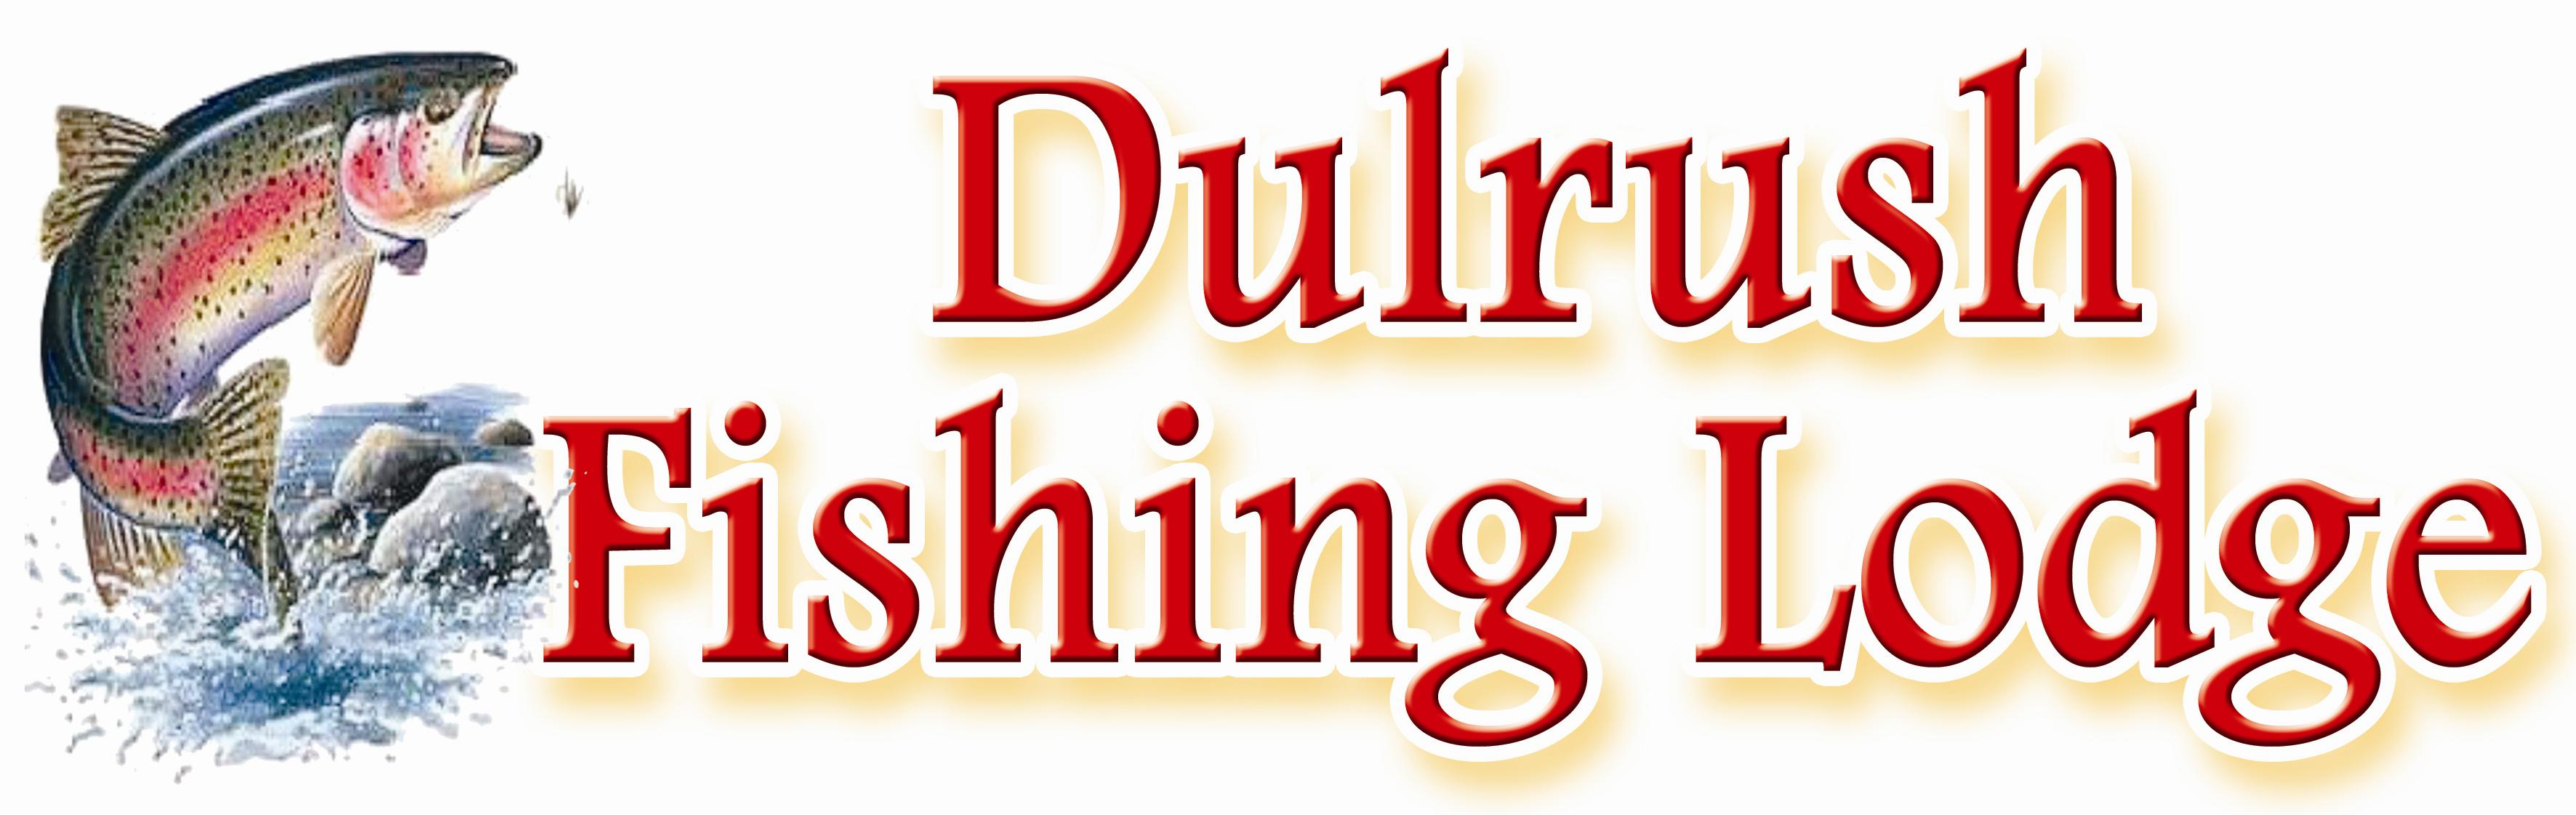 Dulrush Fishing Lodge